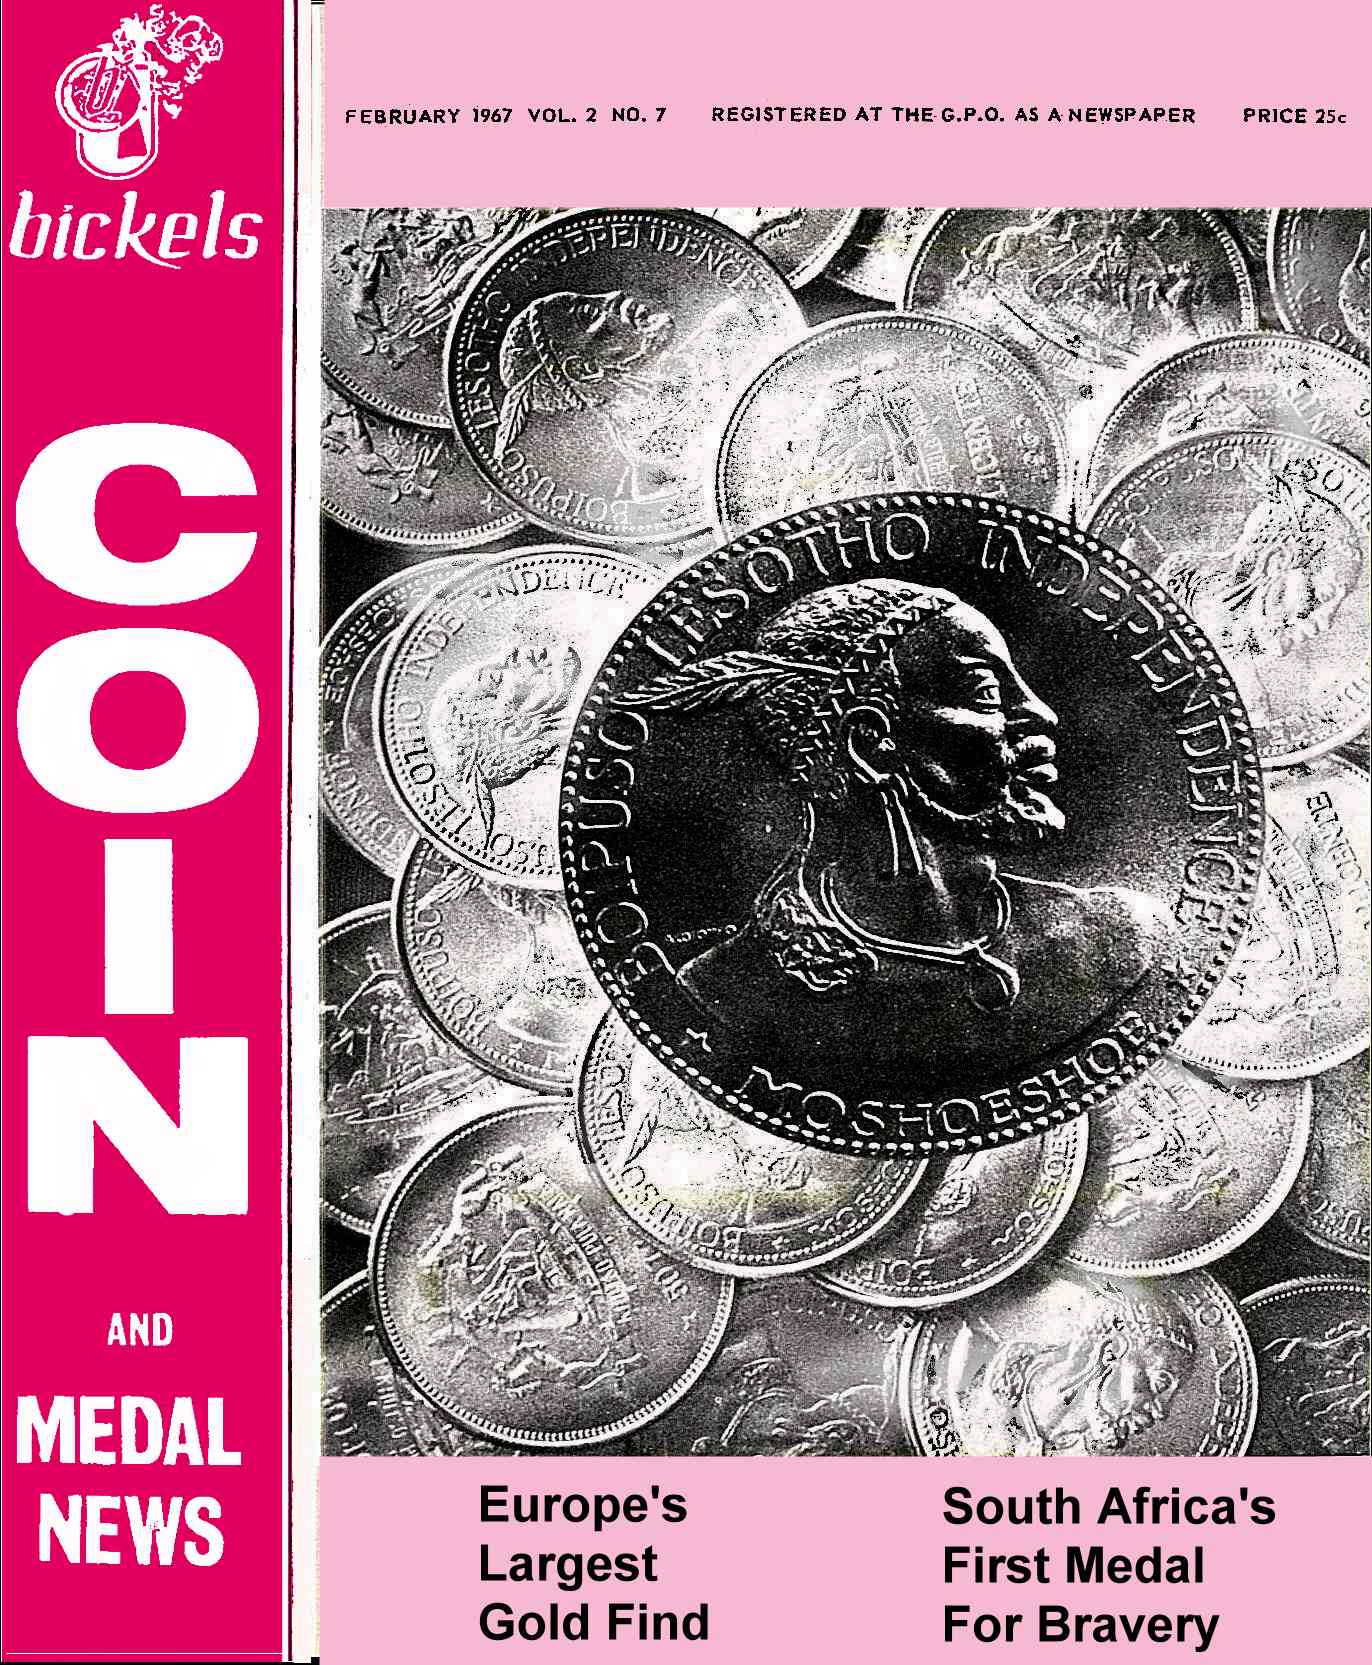 Bickels Coin & Medal News February 1967 Vol 2 No 7